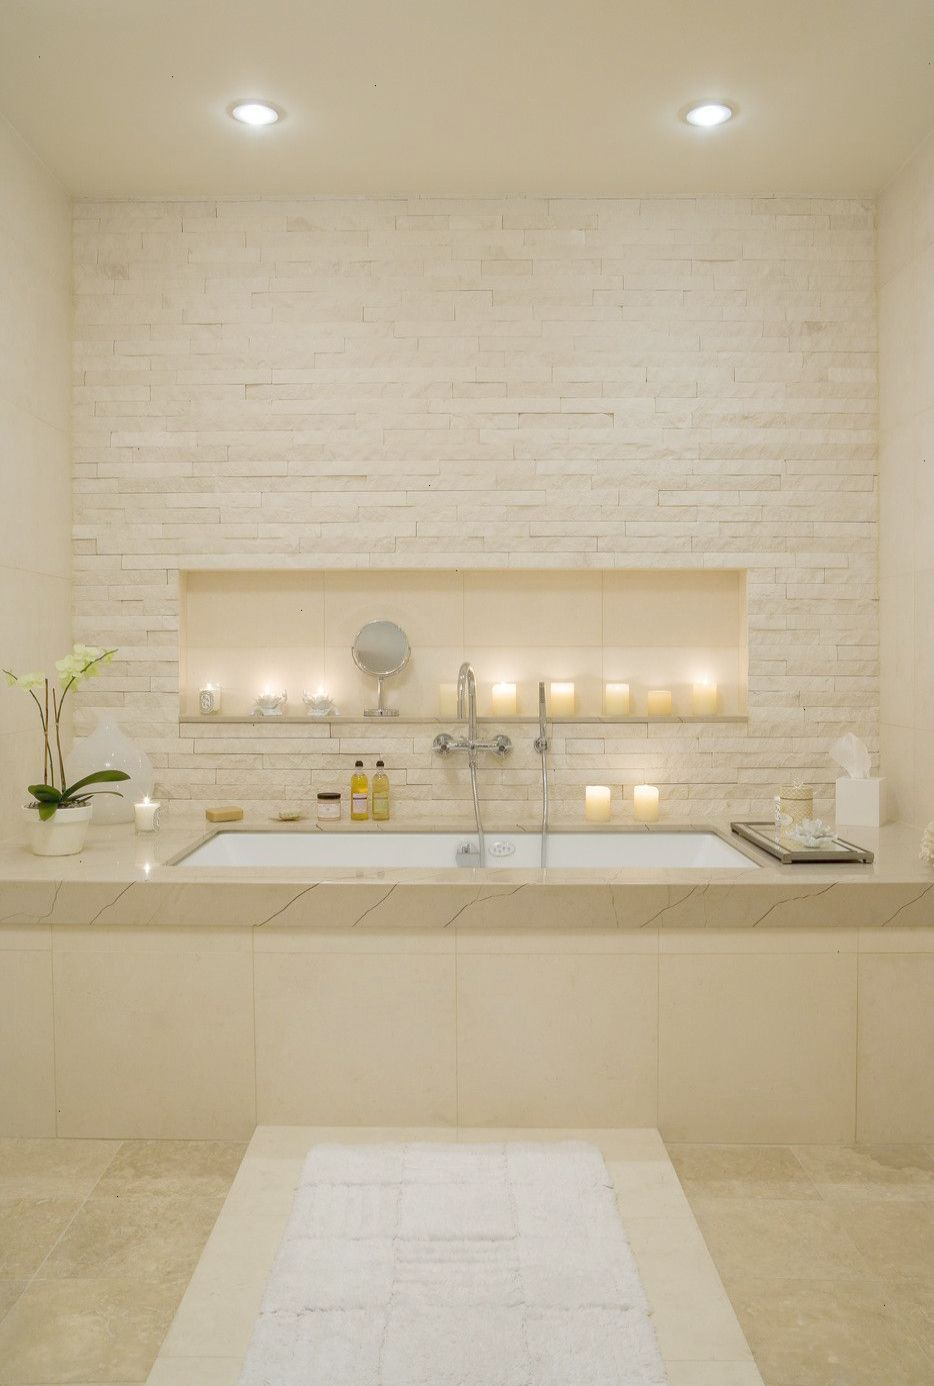 We Love The Modern Bathroom And The Spa Feeling In This Place Spa Style Bathroom Bathroom Remodel Shower Bathroom Photos